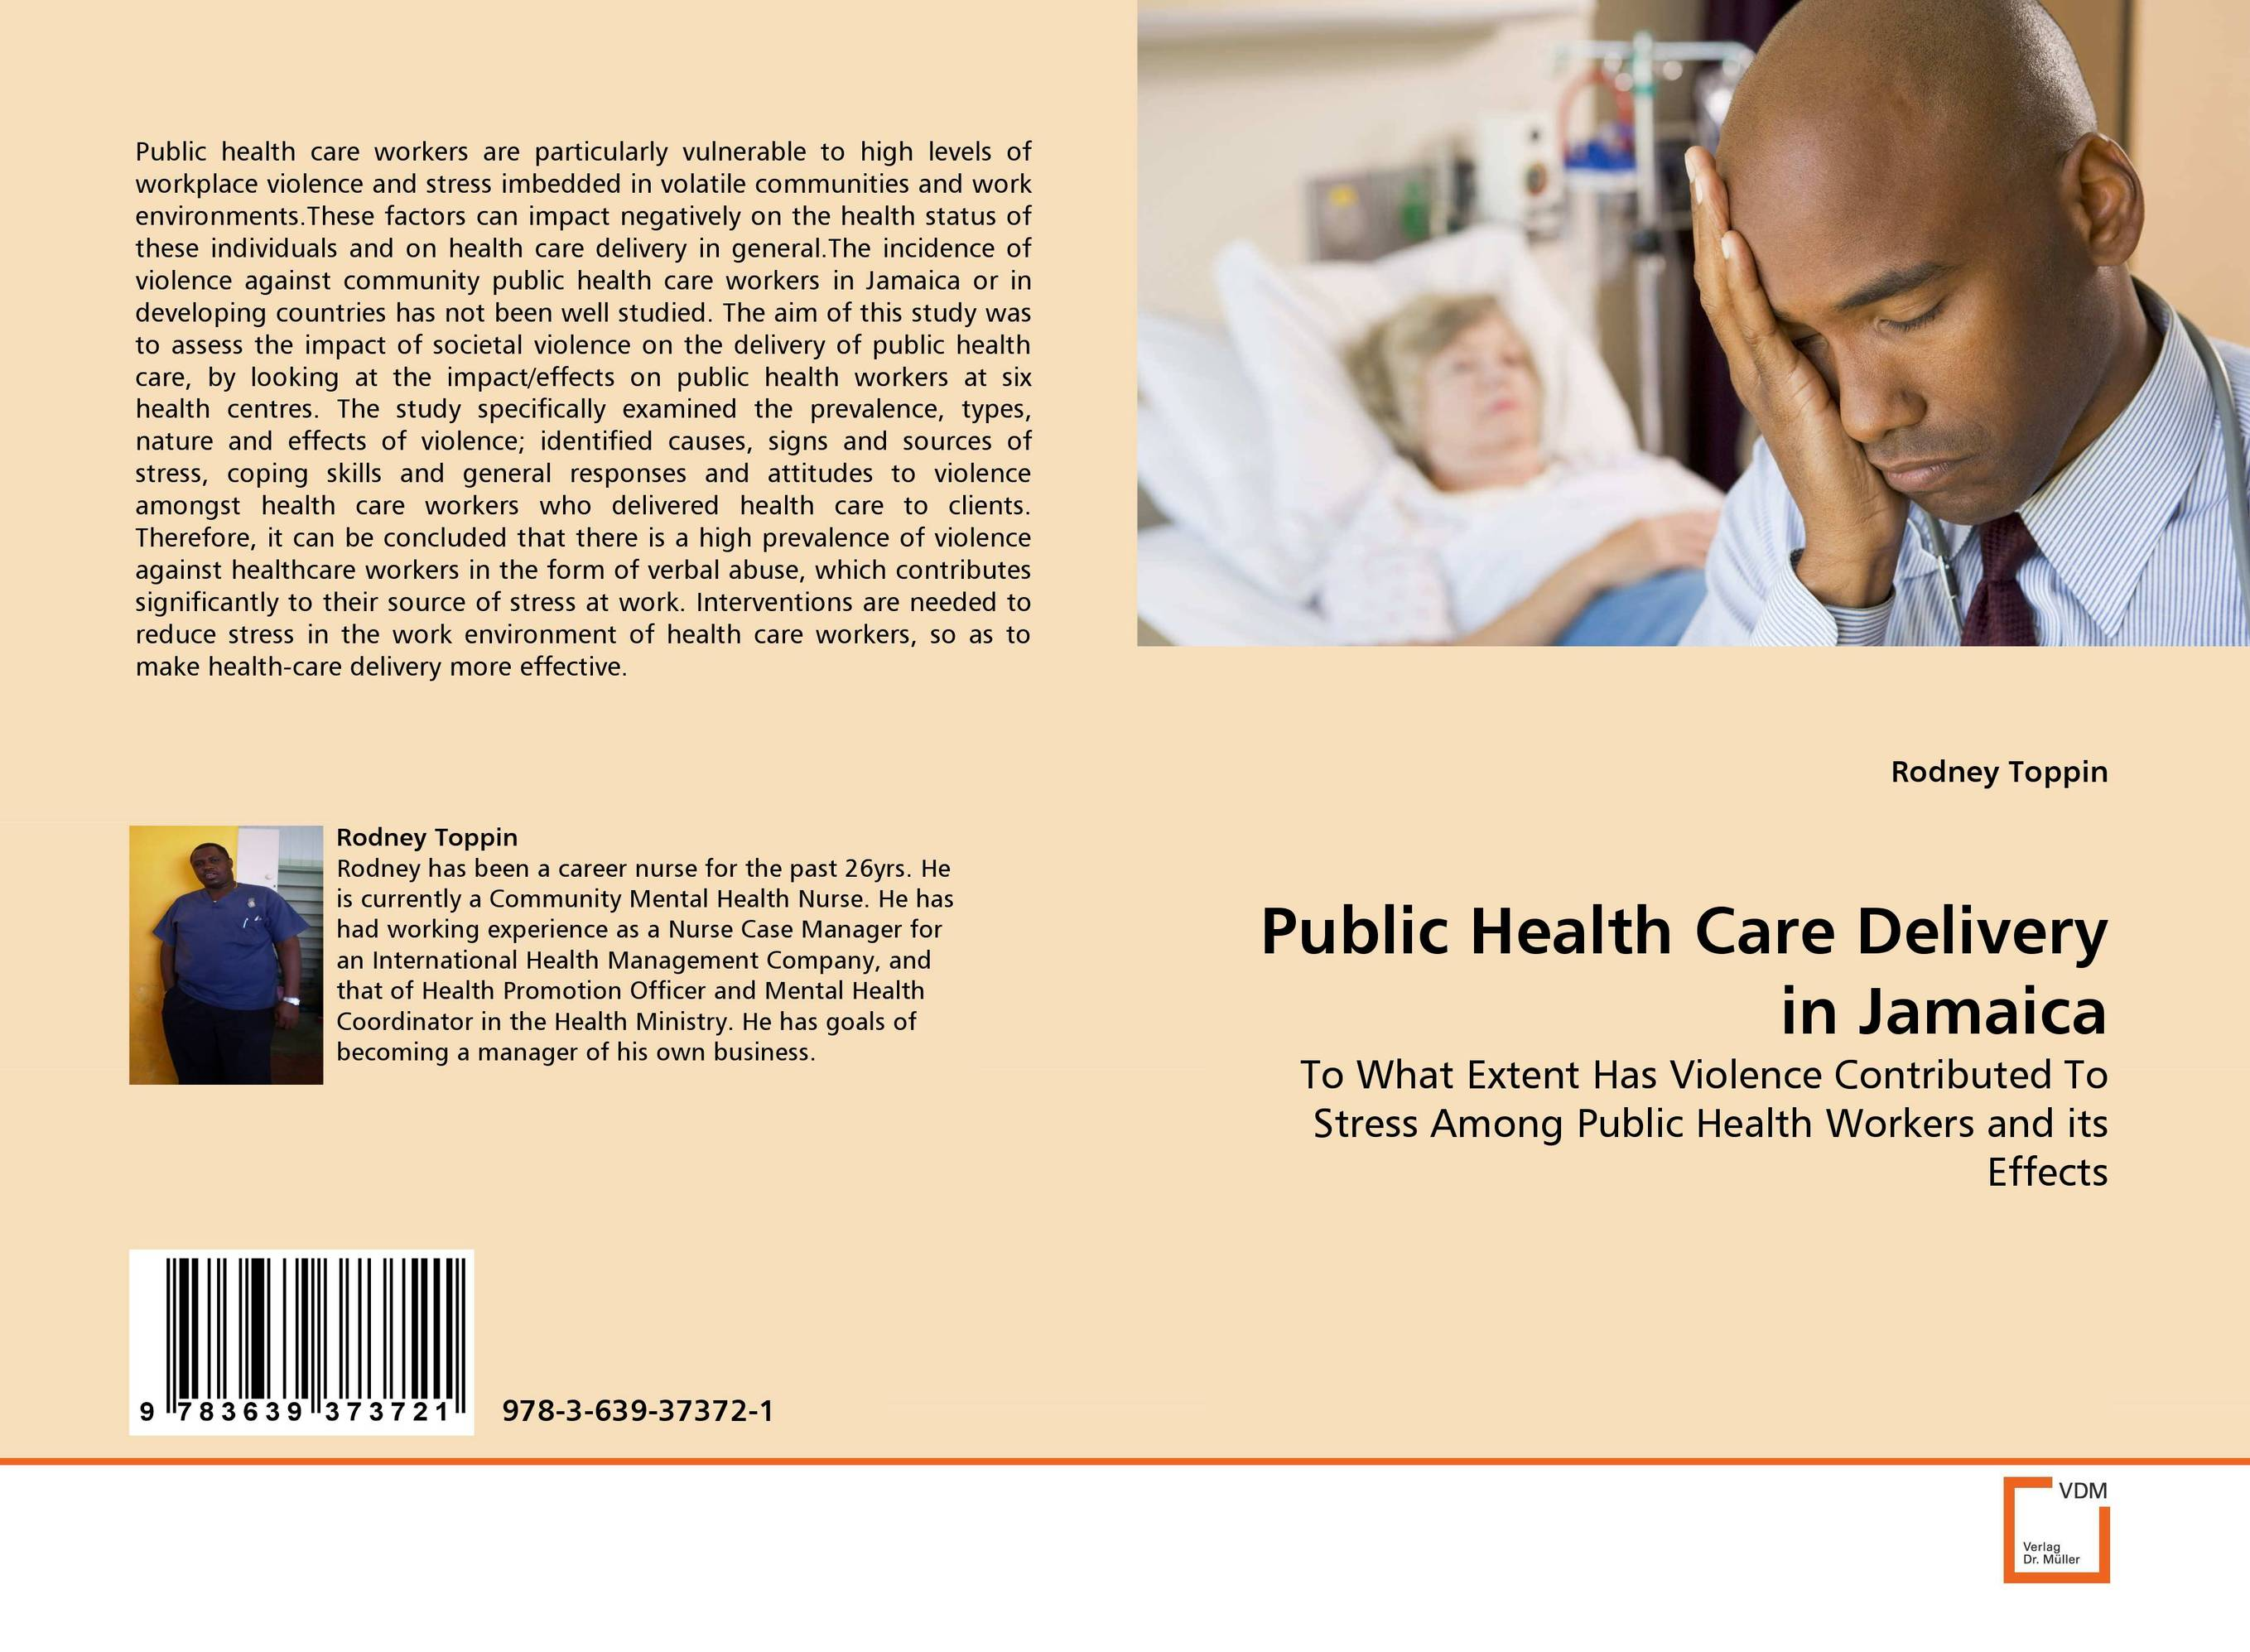 Public Health Care Delivery in Jamaica helina befekadu the nature and effect of emotional violence